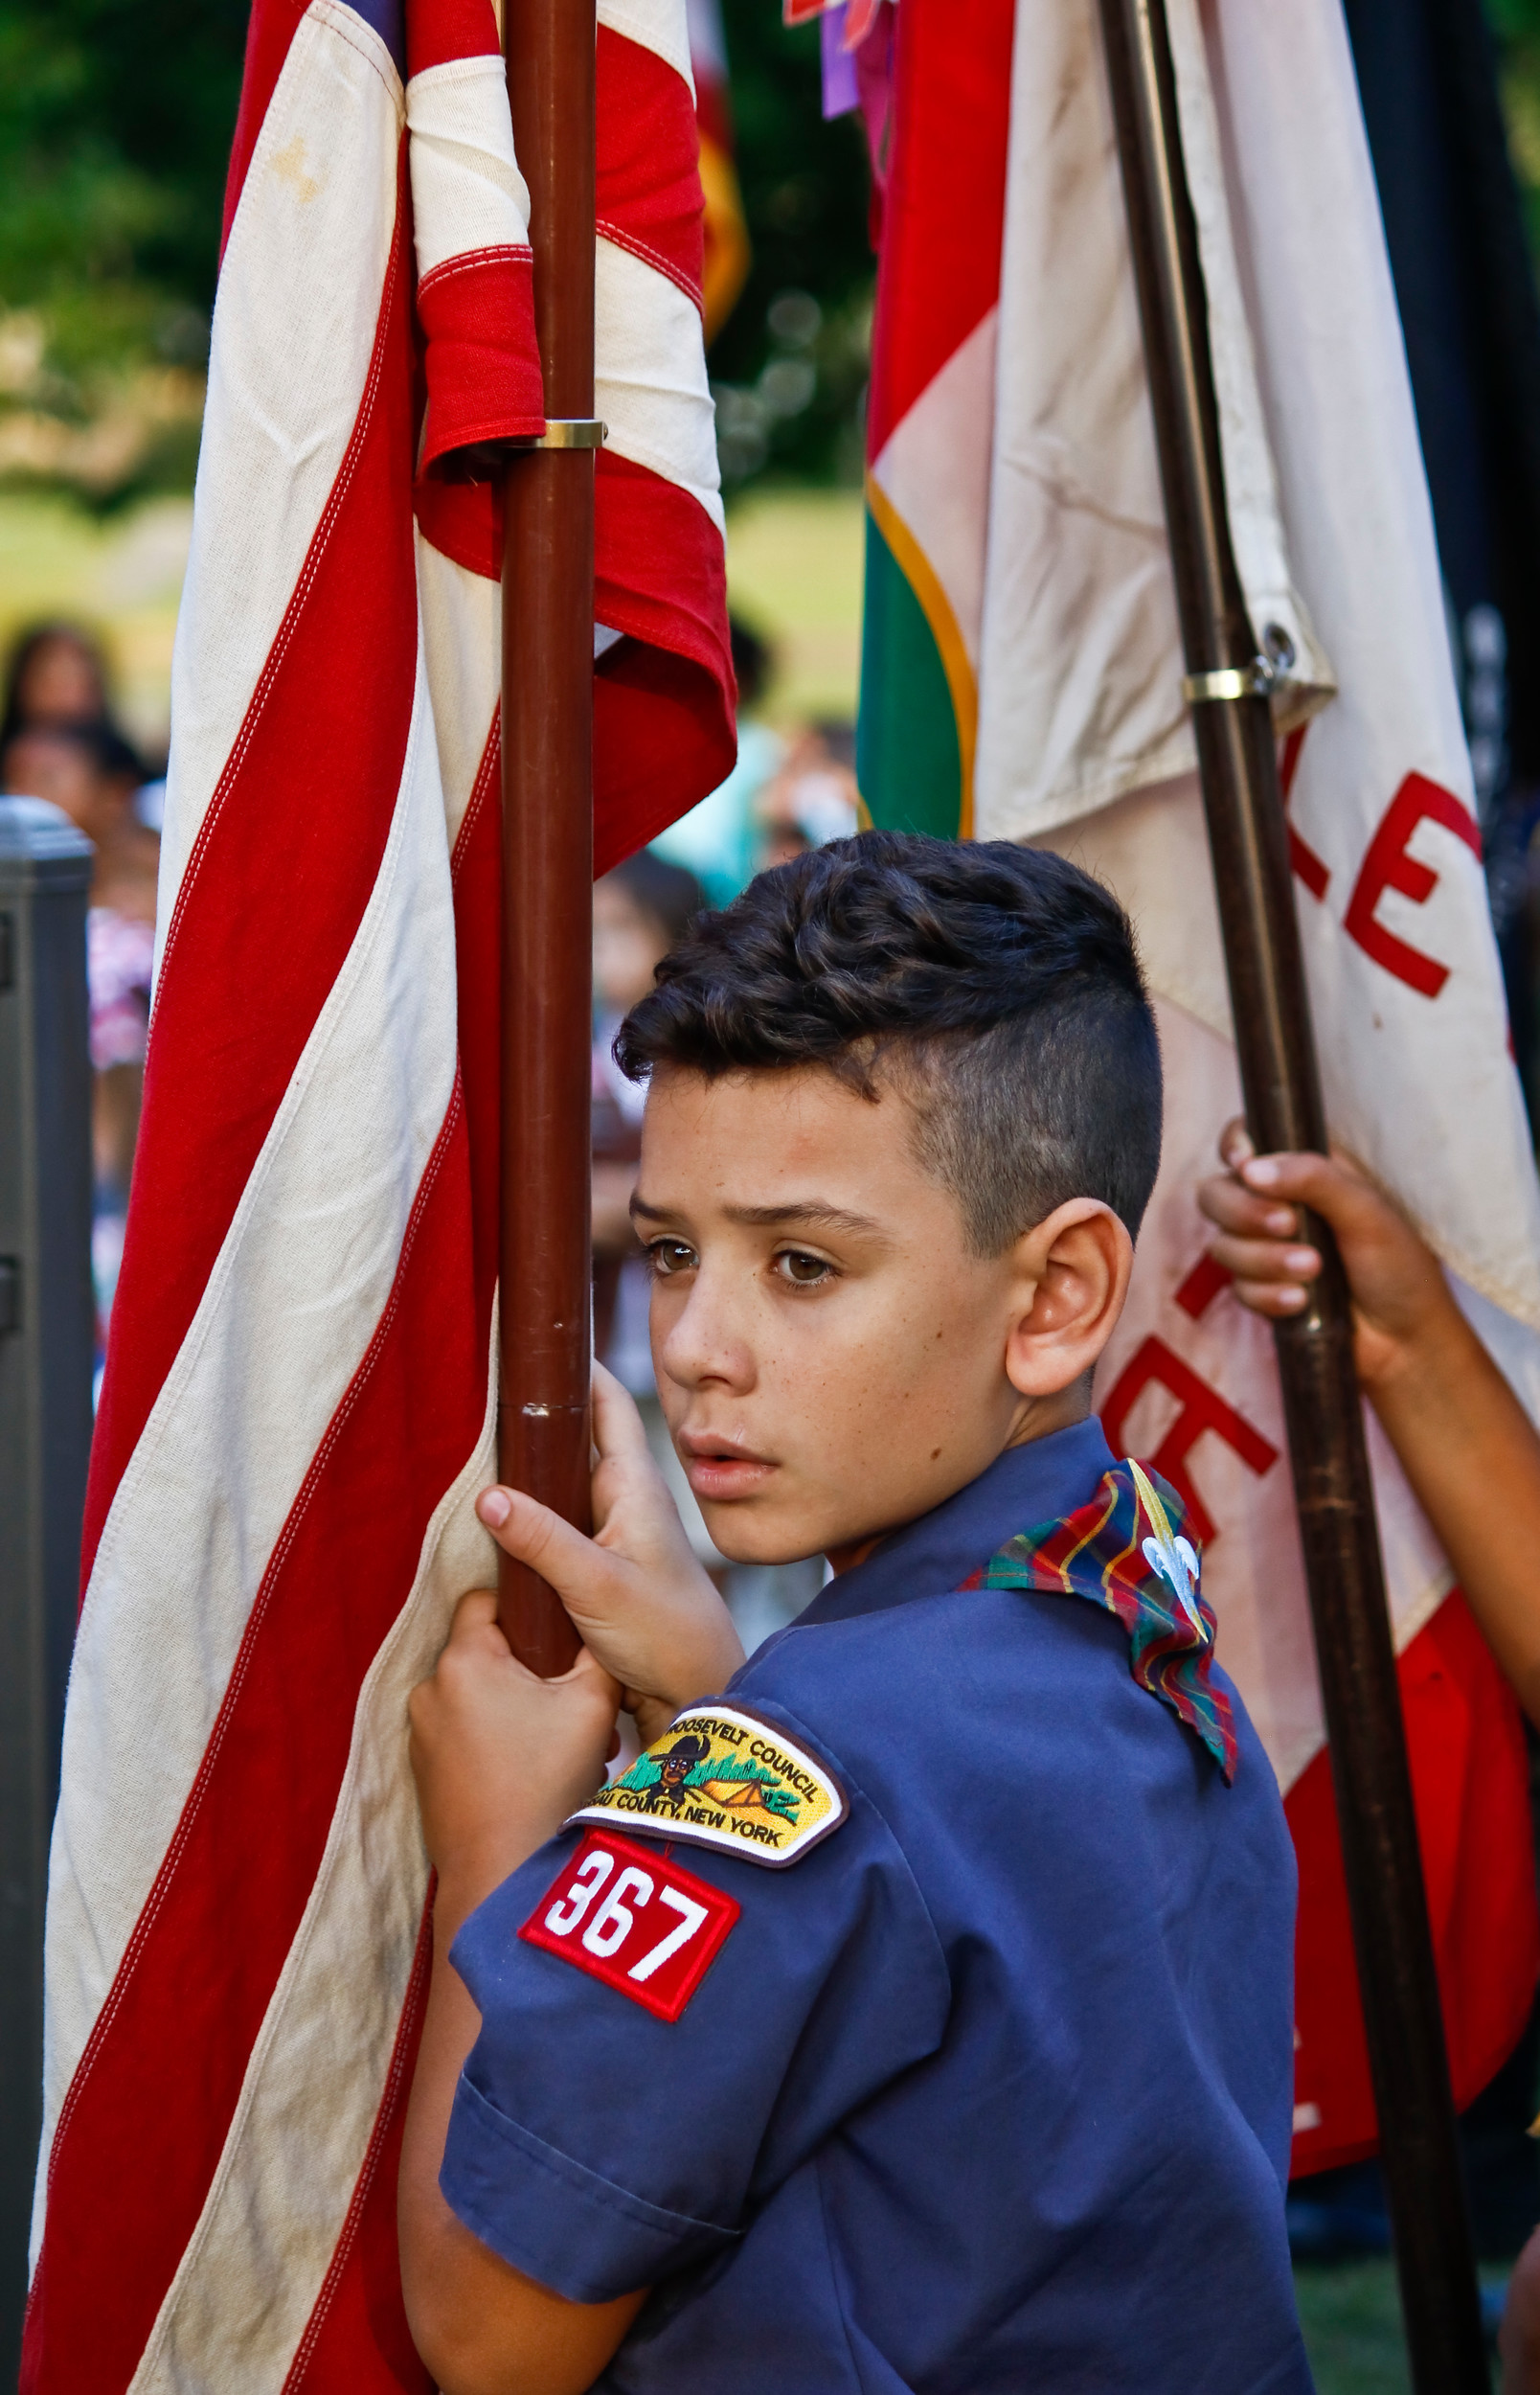 Joining the American Legion, VFW, Girl Scouts and other Boy Scouts, 10 year old Logan Thomson carried the American flag during the presentation of colors and took up his spot as the groups surrounded the memorial at Hendrickson Park.